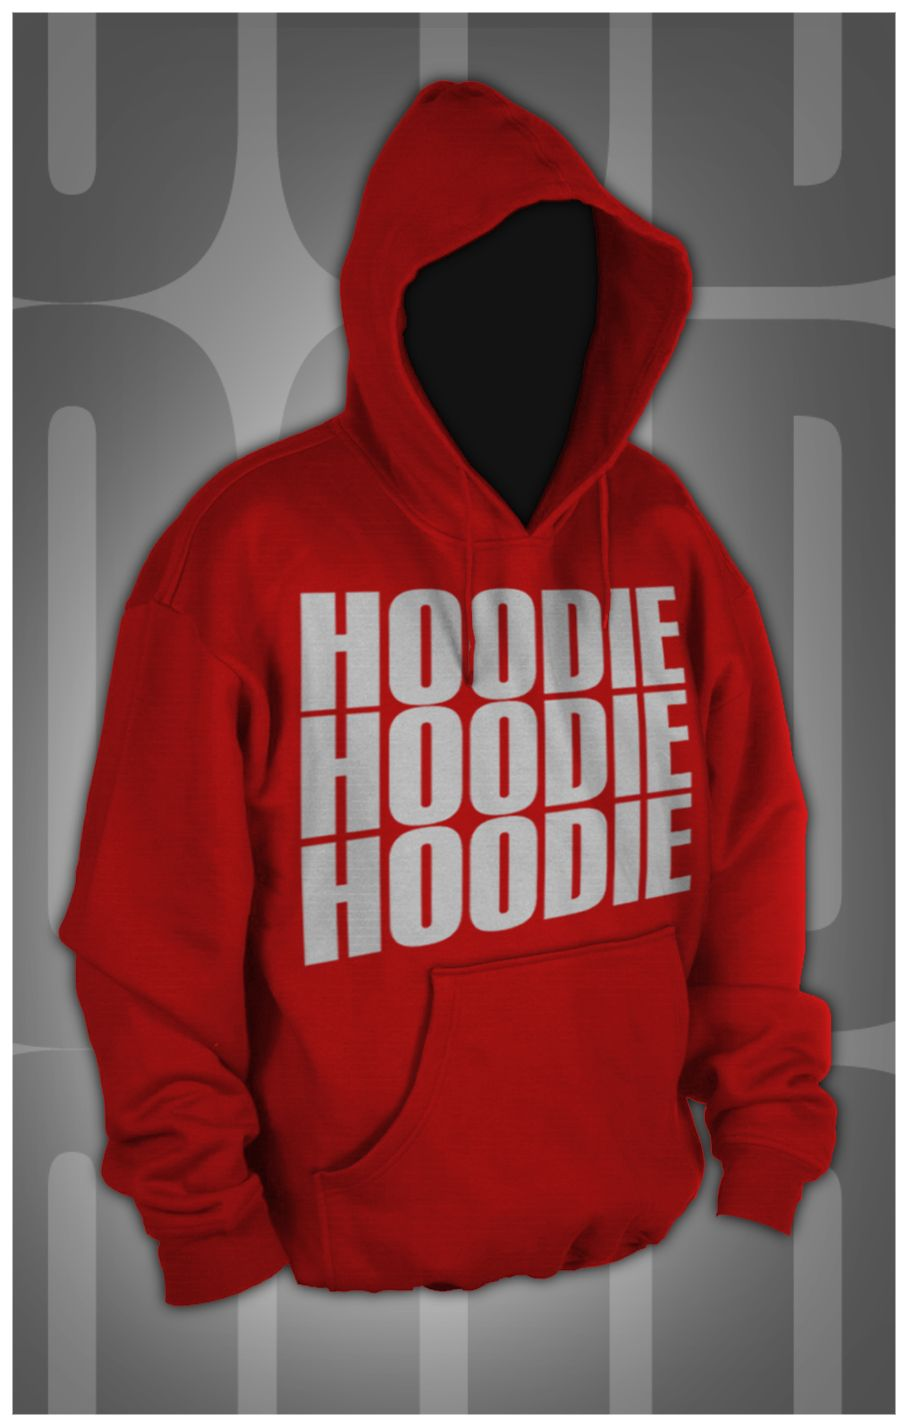 Template hoodie template and shirt design template photoshop - Hoodie Hoodie Template